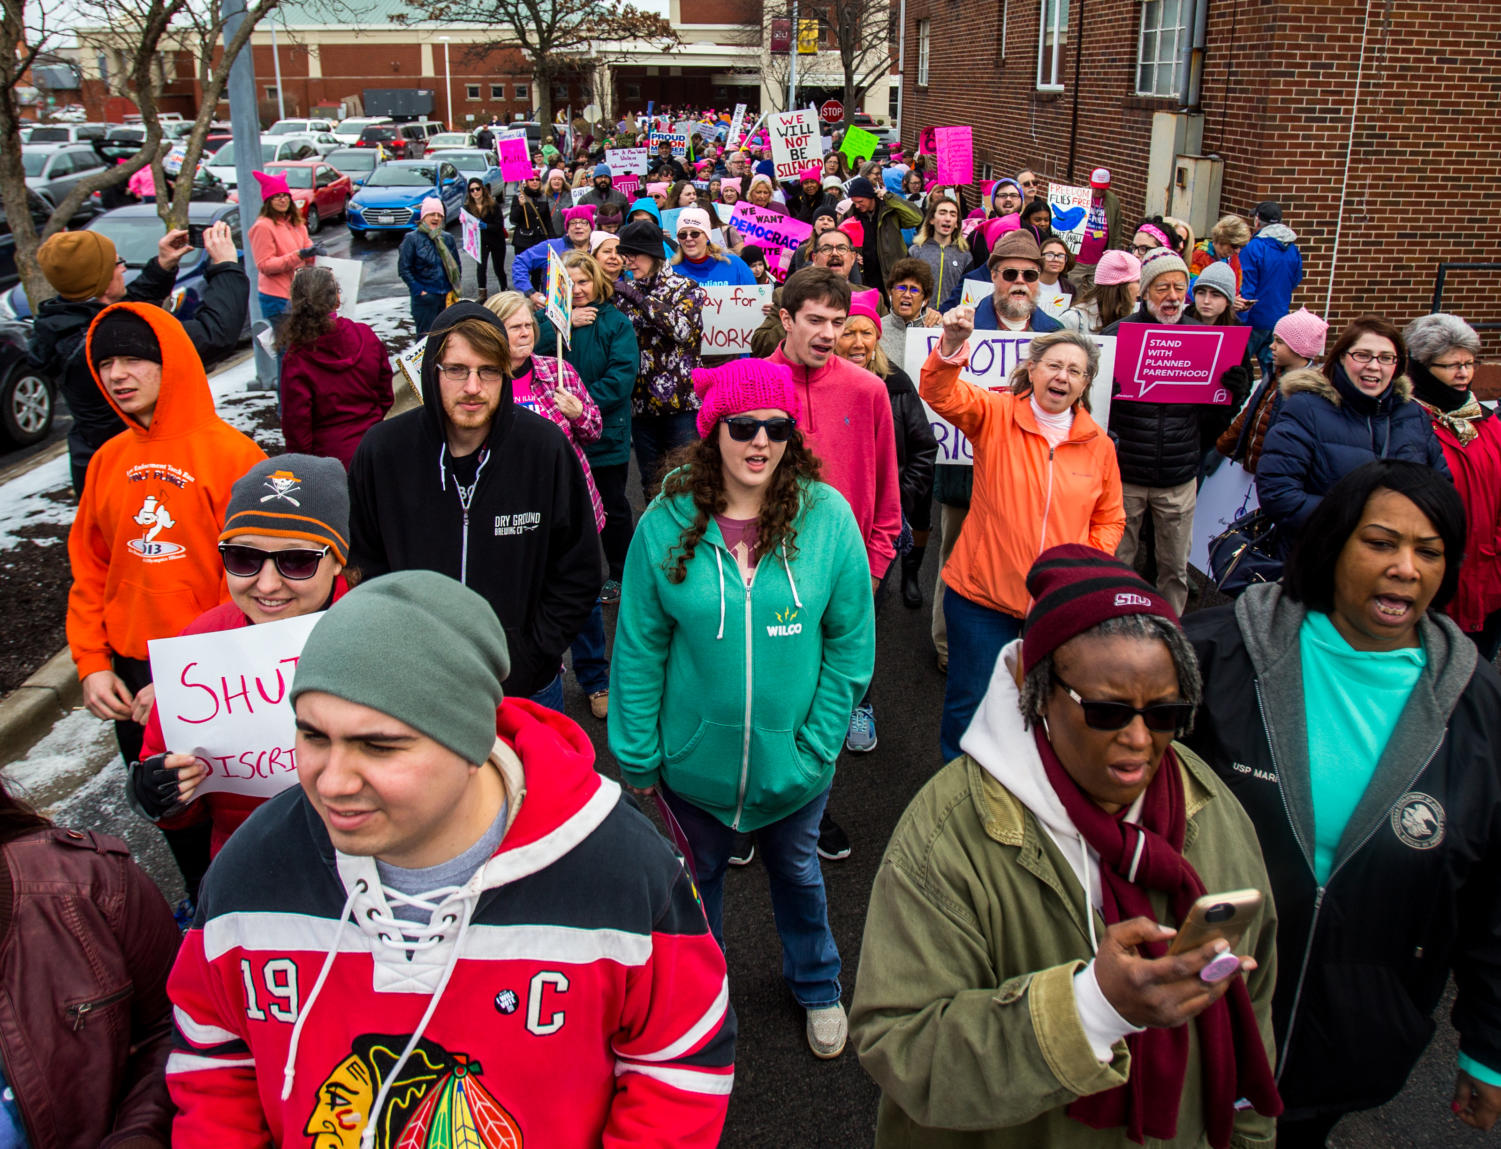 Hundreds+take+the+streets+Saturday%2C+Jan.+20%2C+2018%2C+during+the+Southern+Illinois+March+to+the+Polls+outside+the+Carbondale+Civic+Center.+%28Brian+Mu%C2%96oz+%7C+%40BrianMMunoz%29